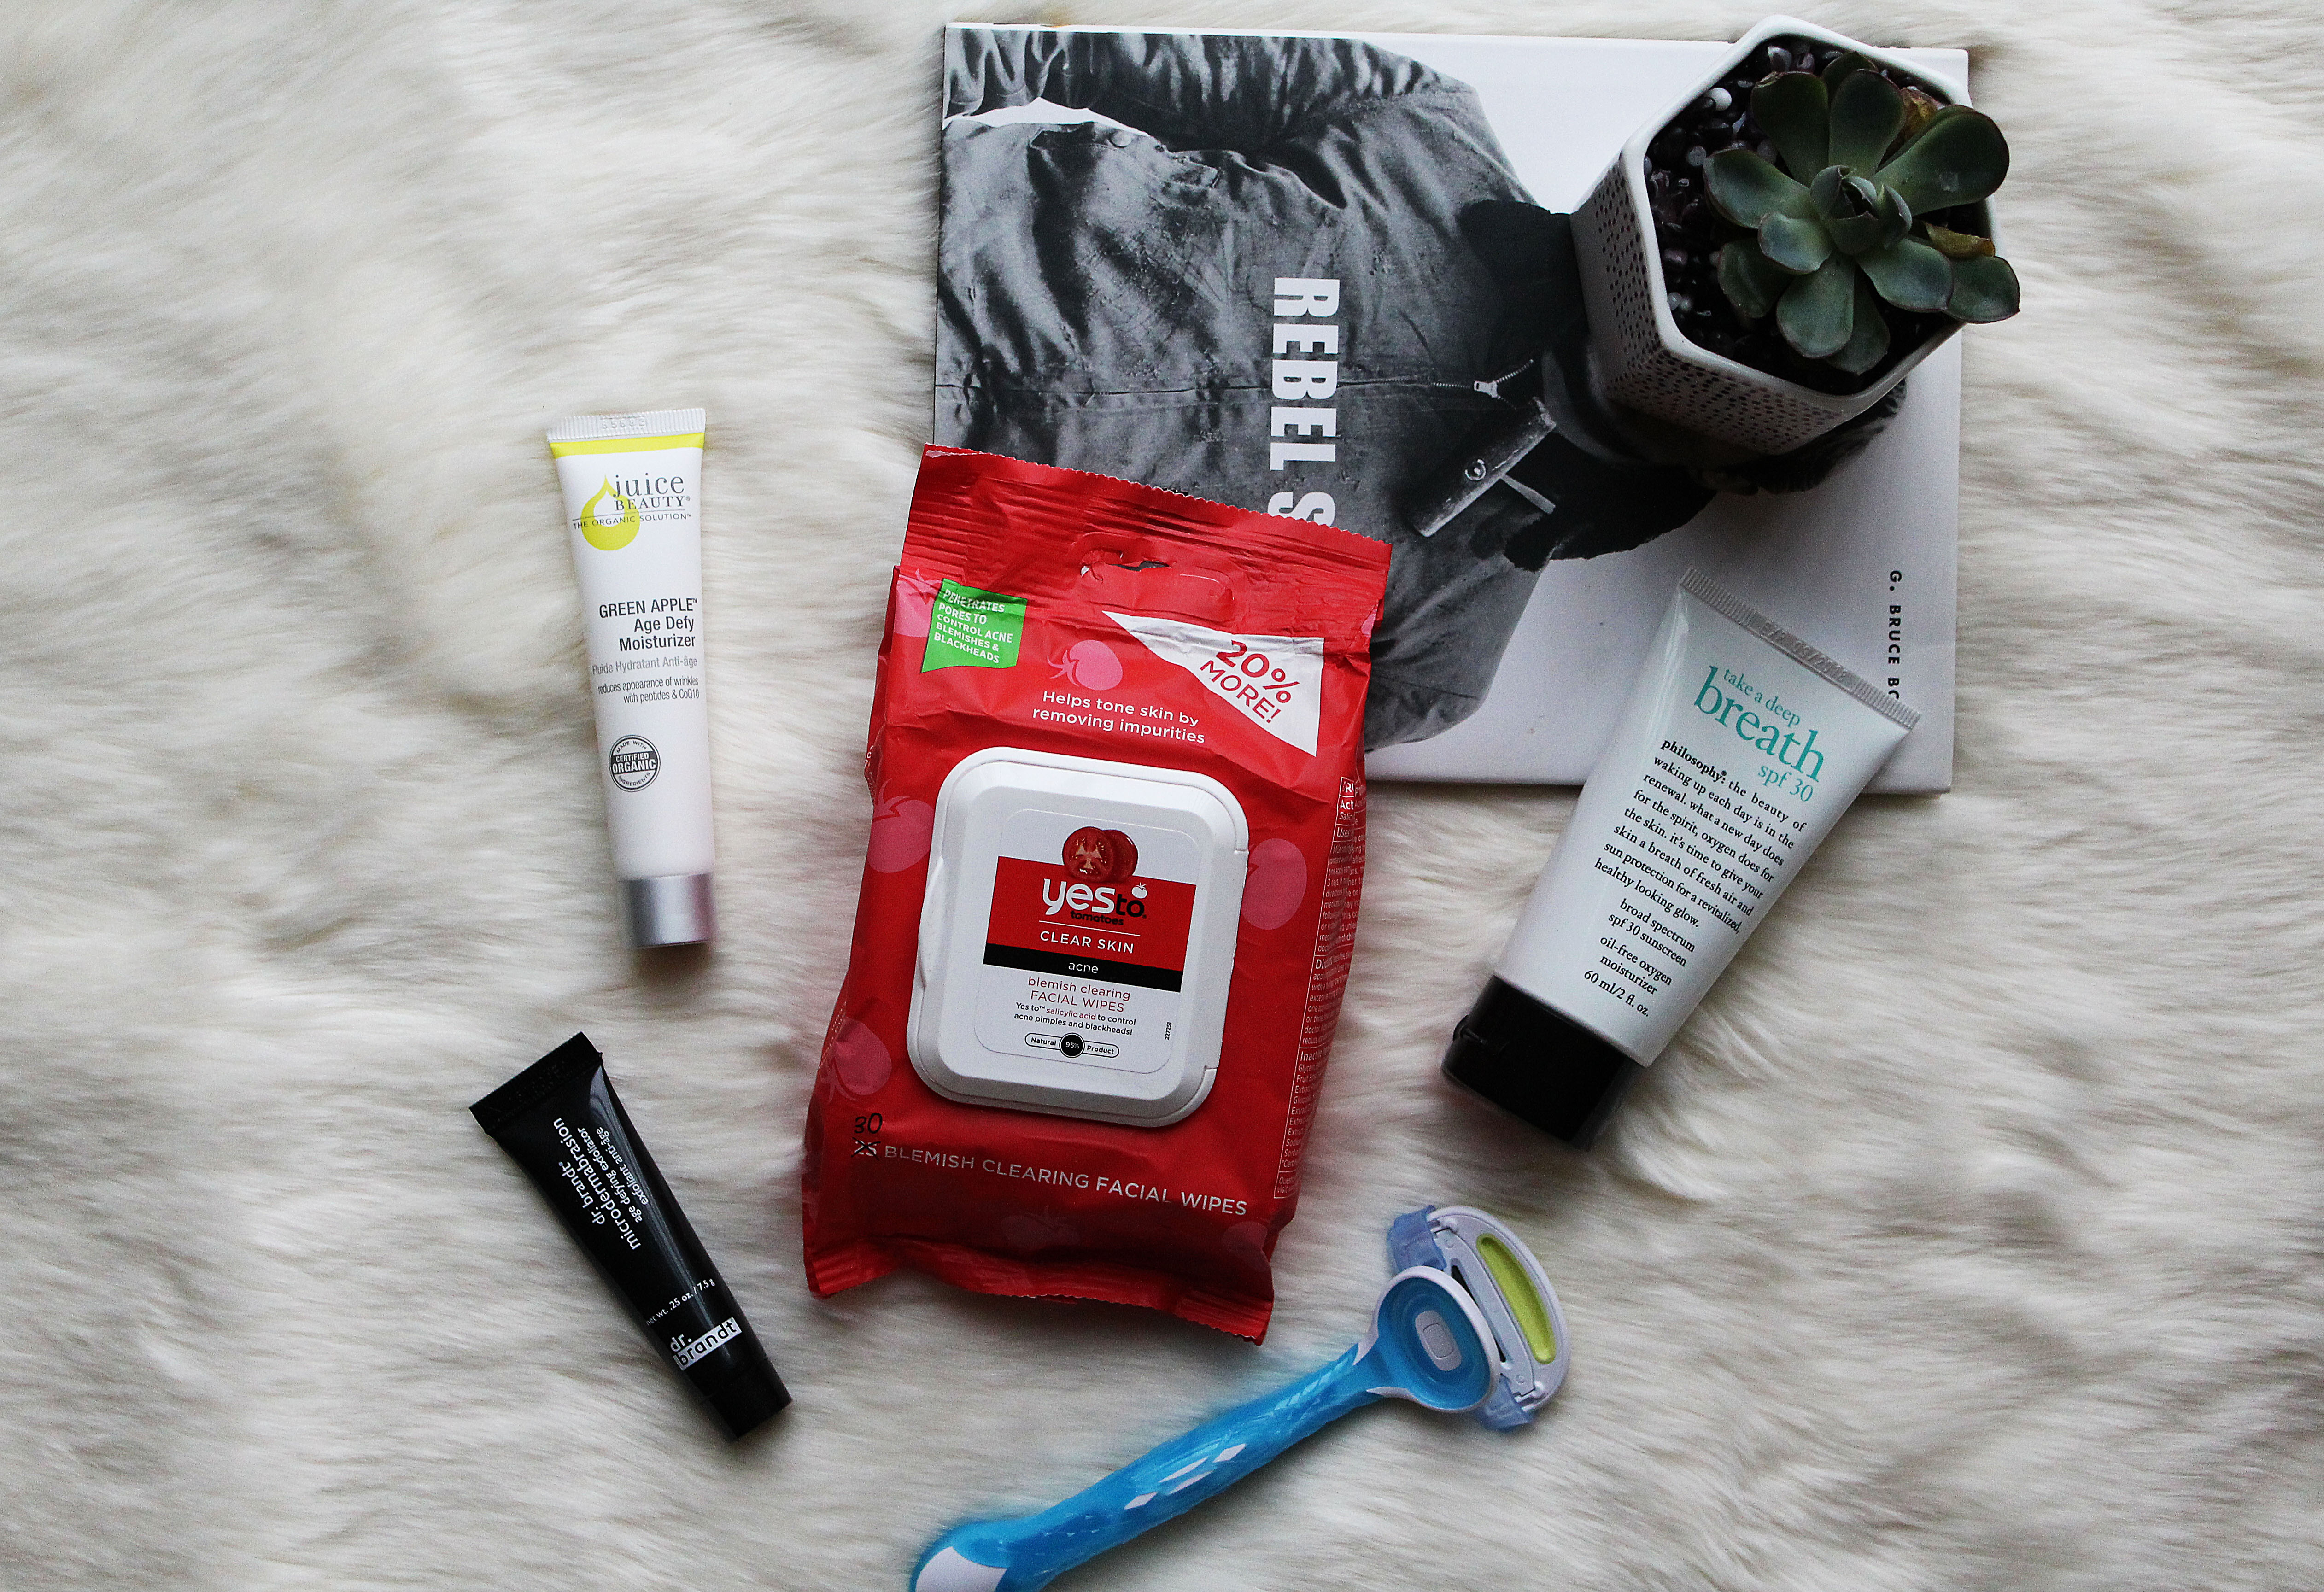 Beauty Product Review - February - The B-List Blog